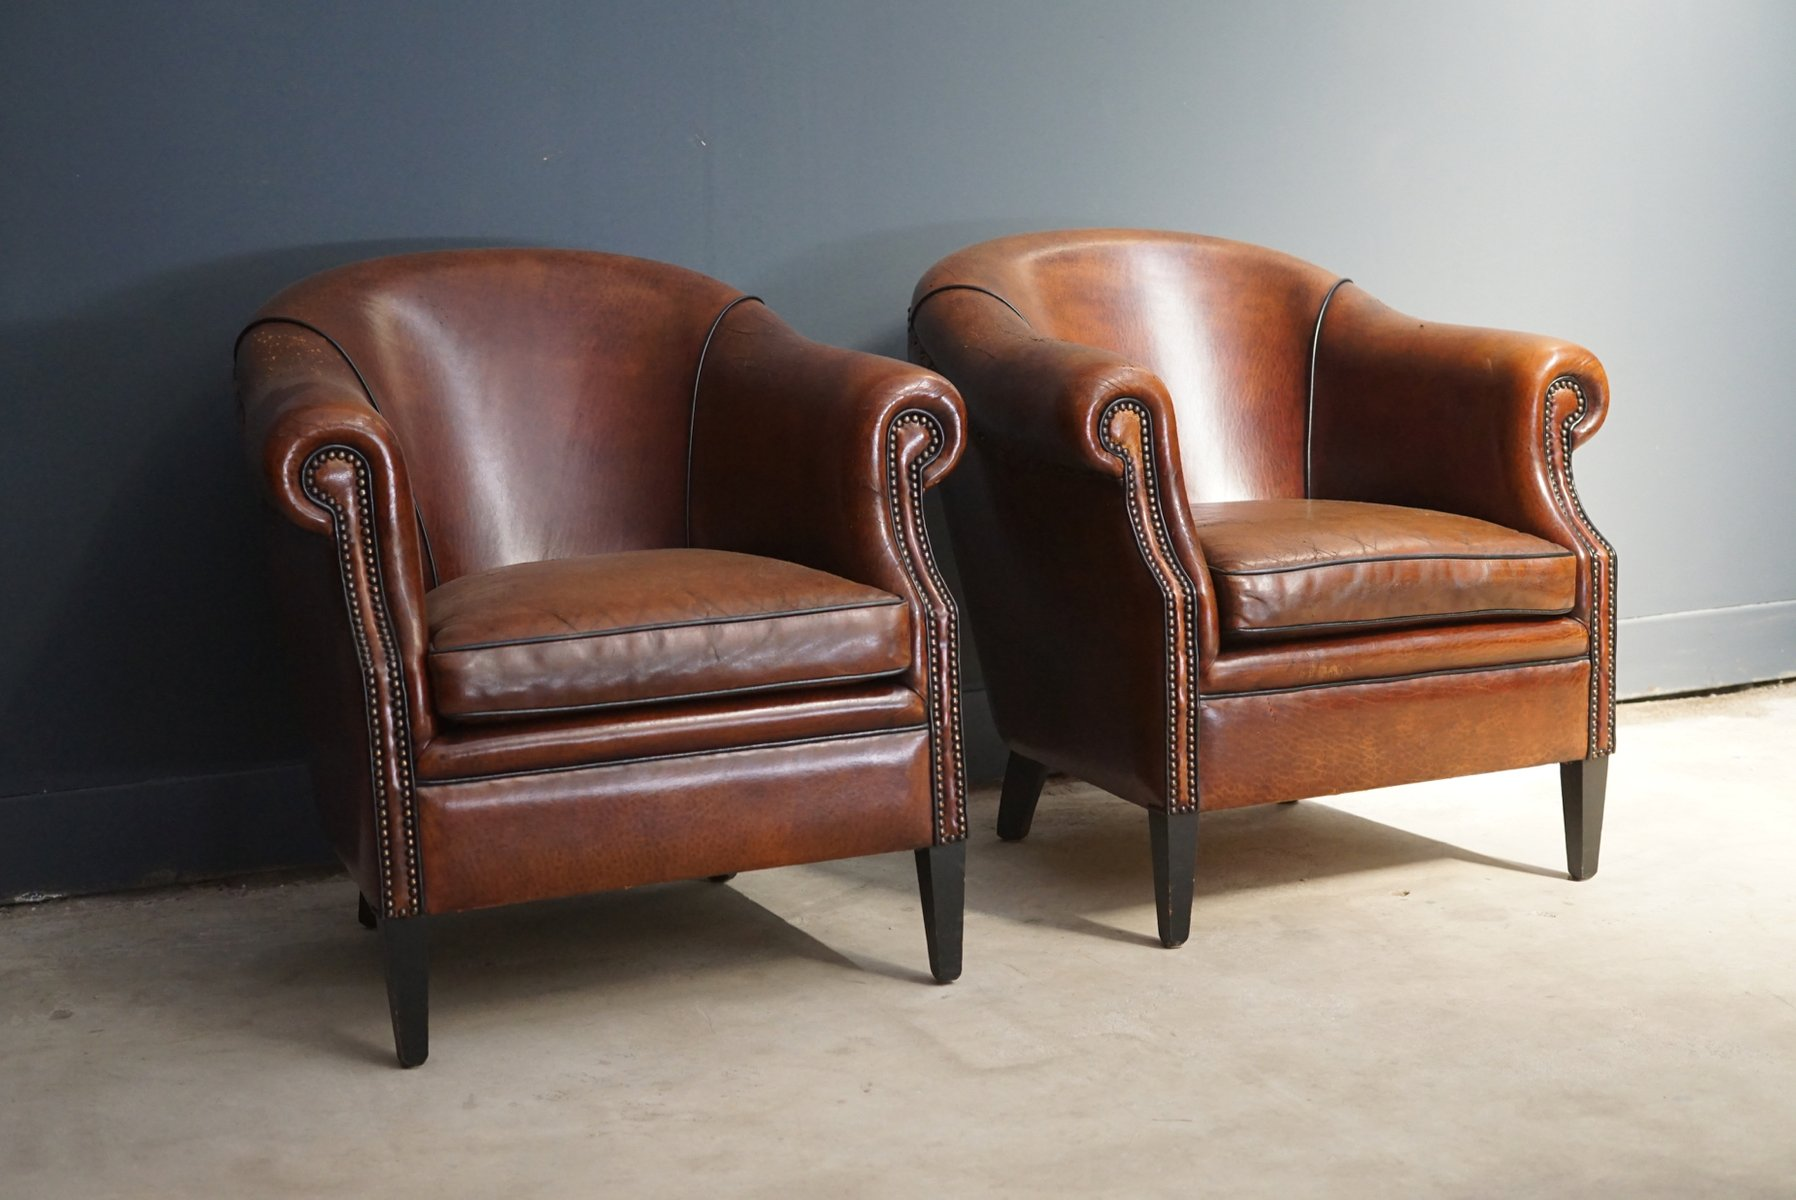 Vintage Cognac Leather Club Chairs Set Of 2 For Sale At